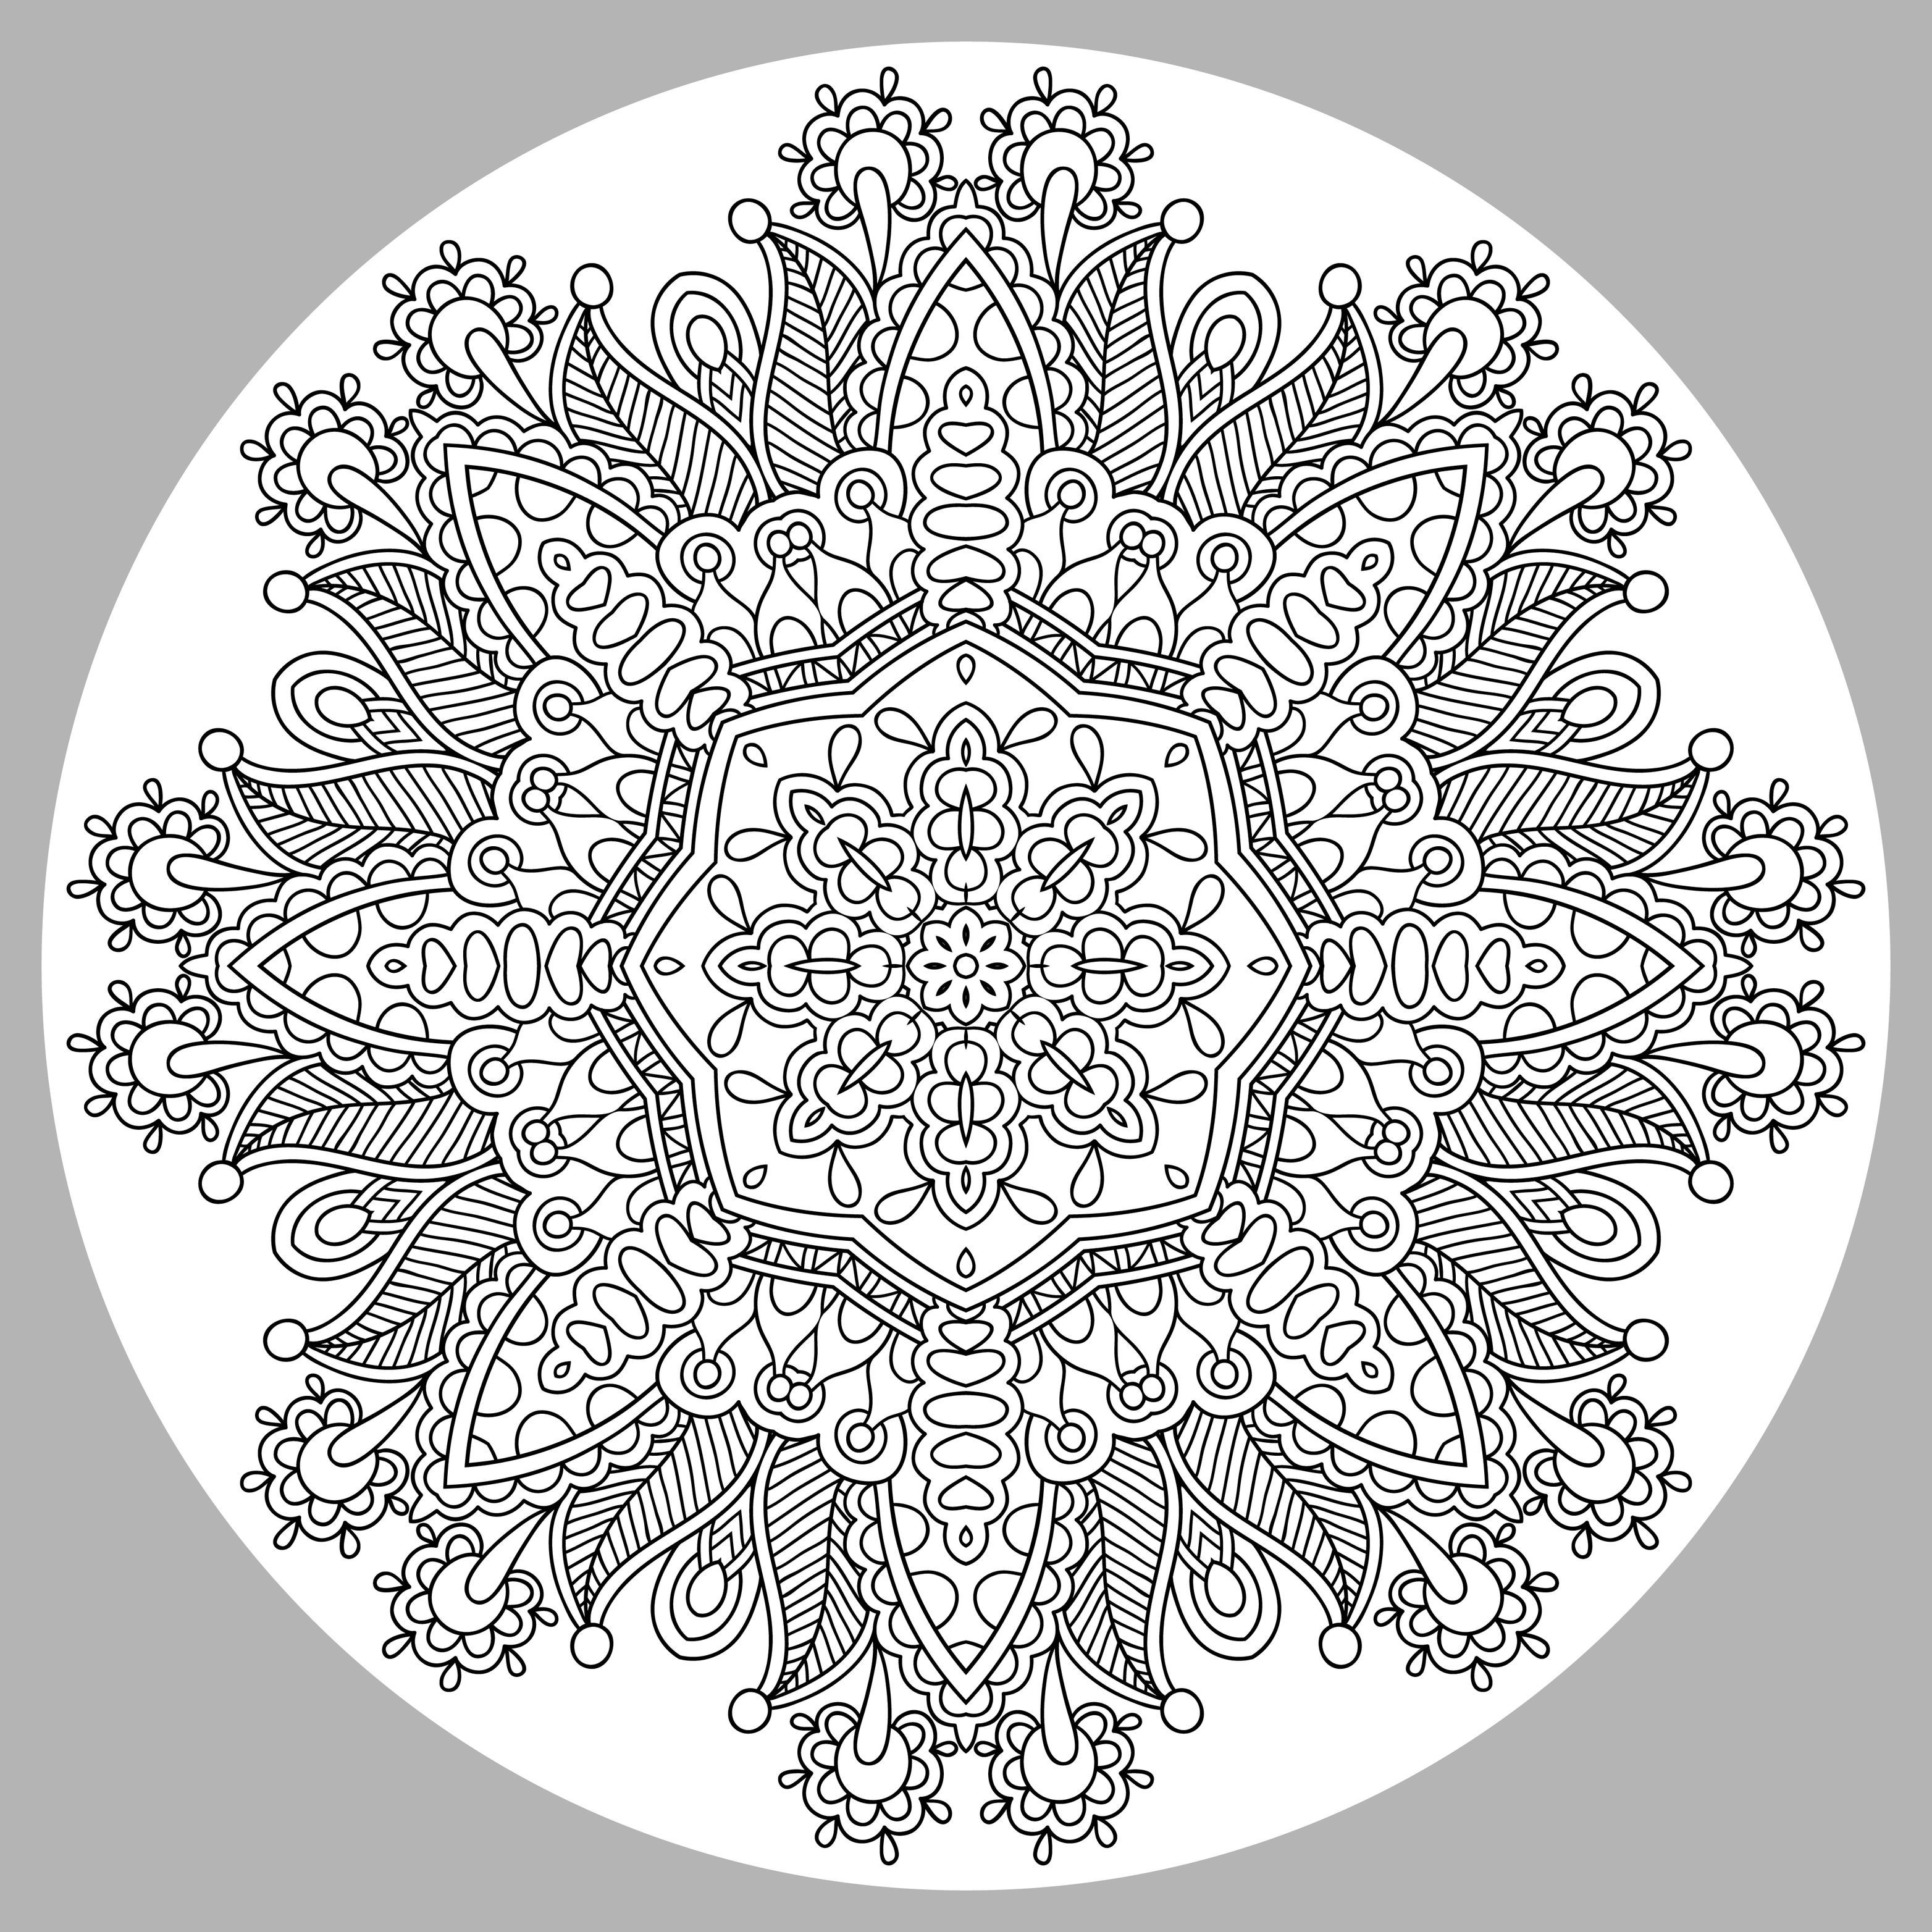 Cool Mandala With Grey Background Very Difficult Mandalas For